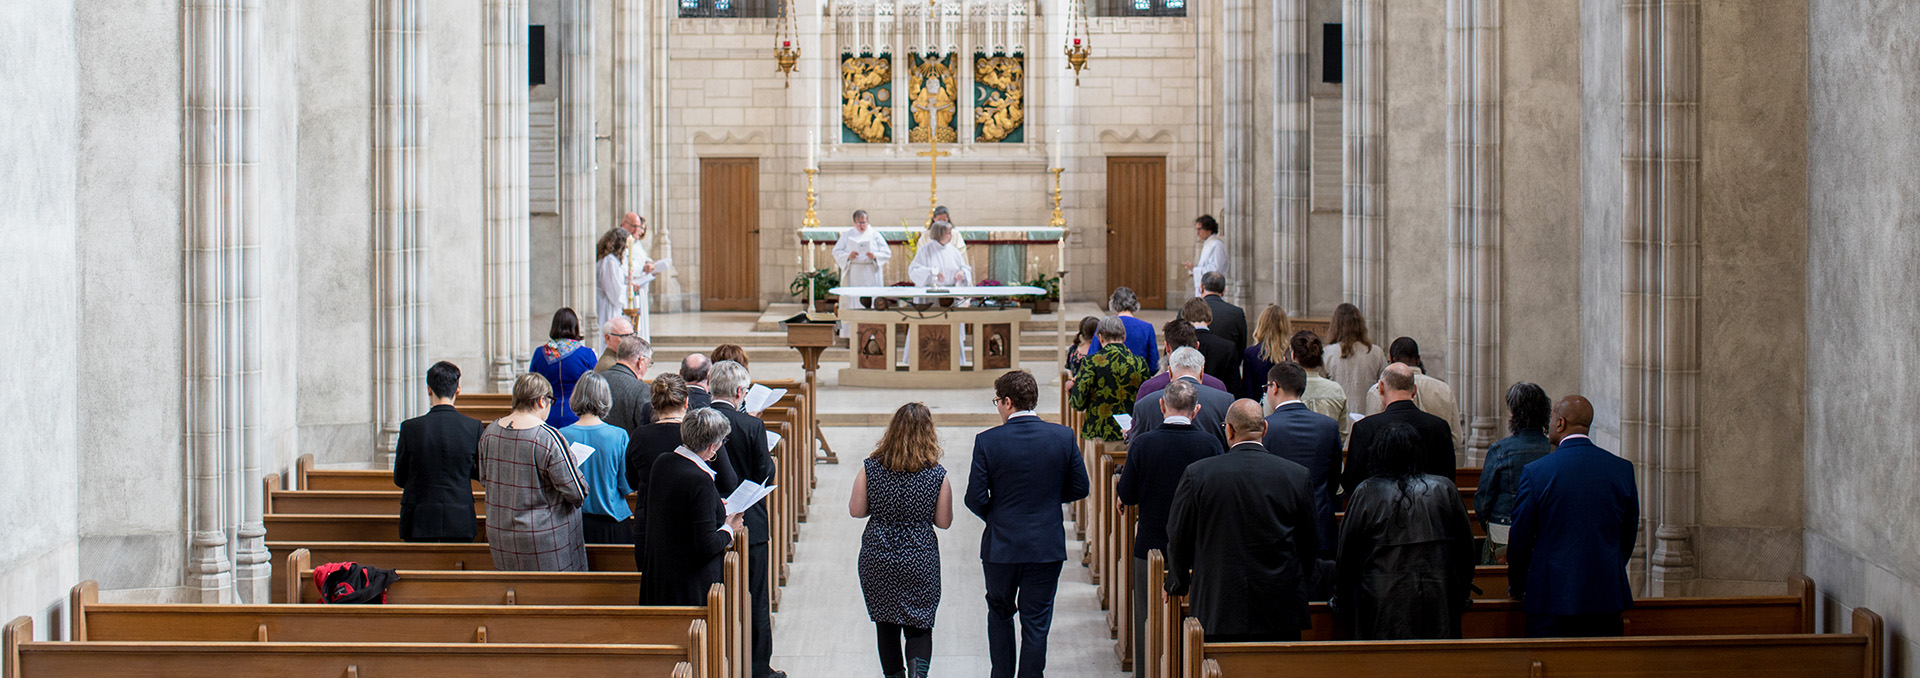 Faculty of Divinity service in the Chapel prior to Convocation 2019